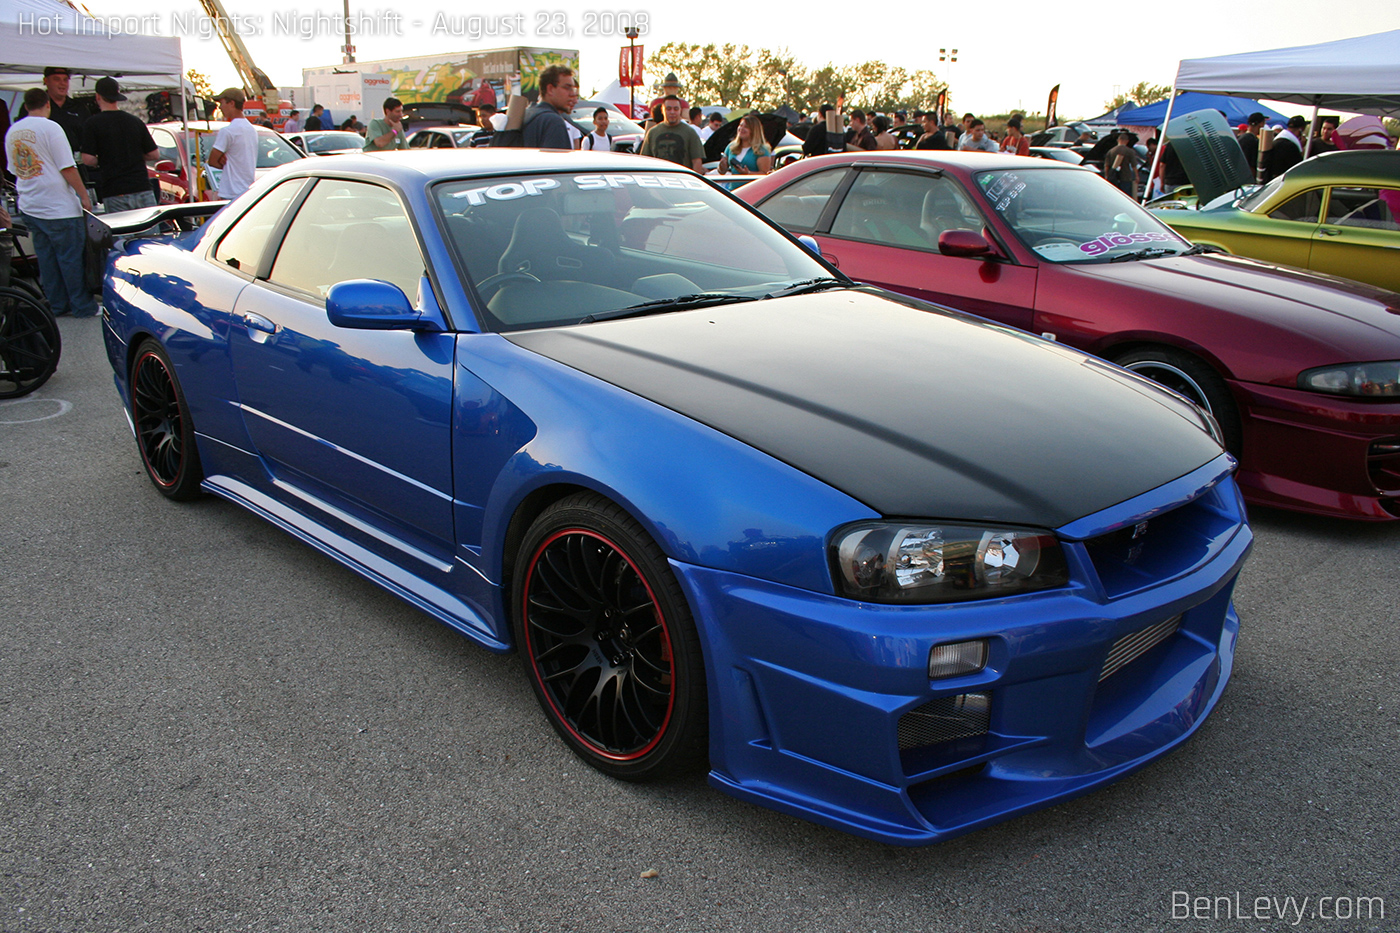 Top Speed Nissan Skyline GT R